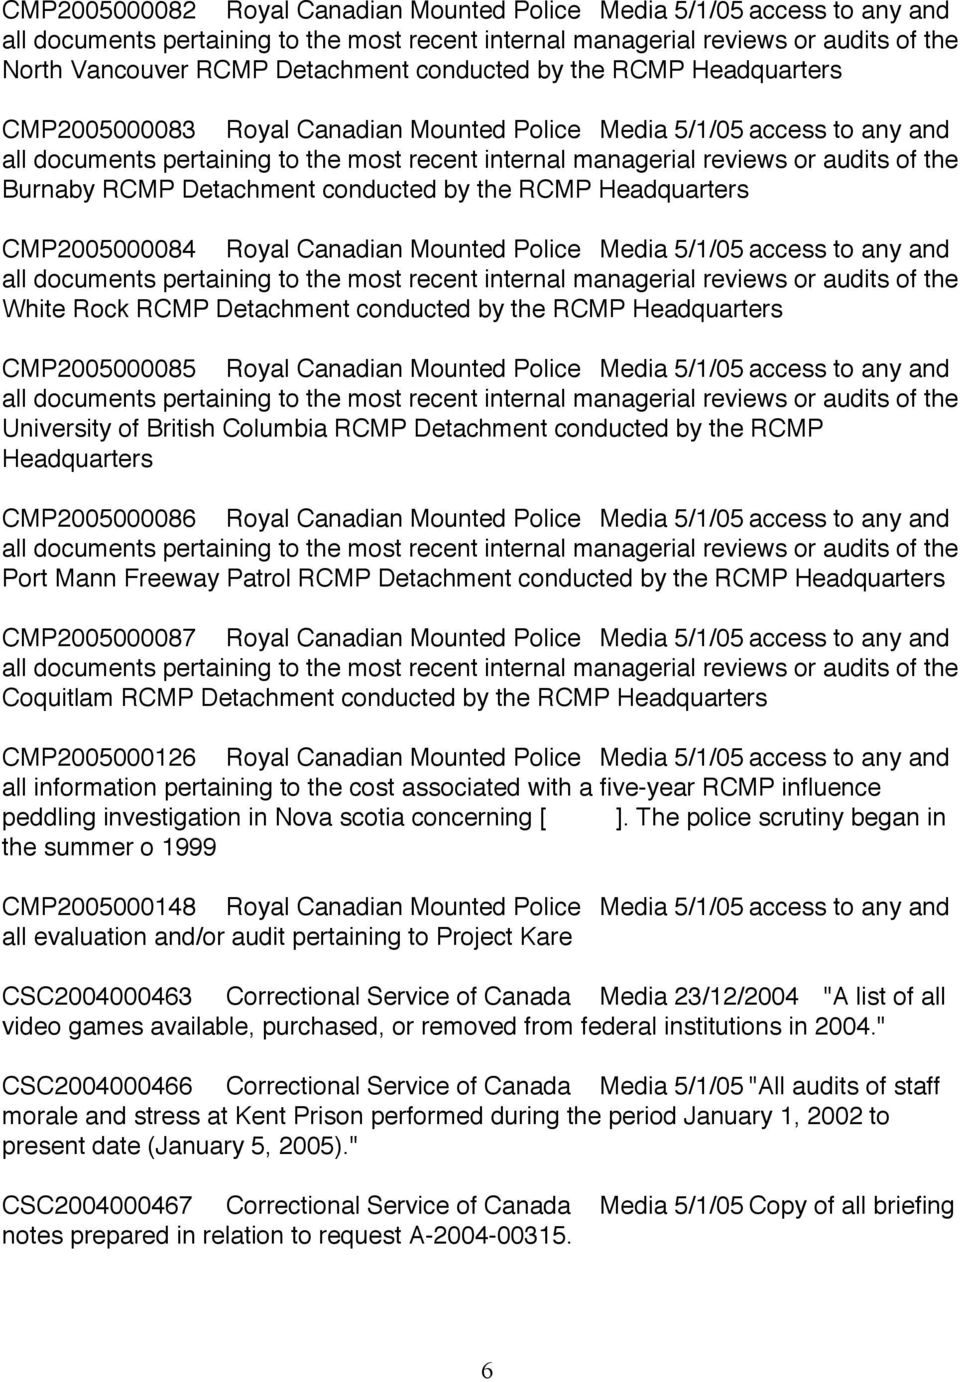 Burnaby RCMP Detachment conducted by the RCMP Headquarters CMP2005000084 Royal Canadian Mounted Police Media 5/1/05 access to any and all documents pertaining to the most recent internal managerial